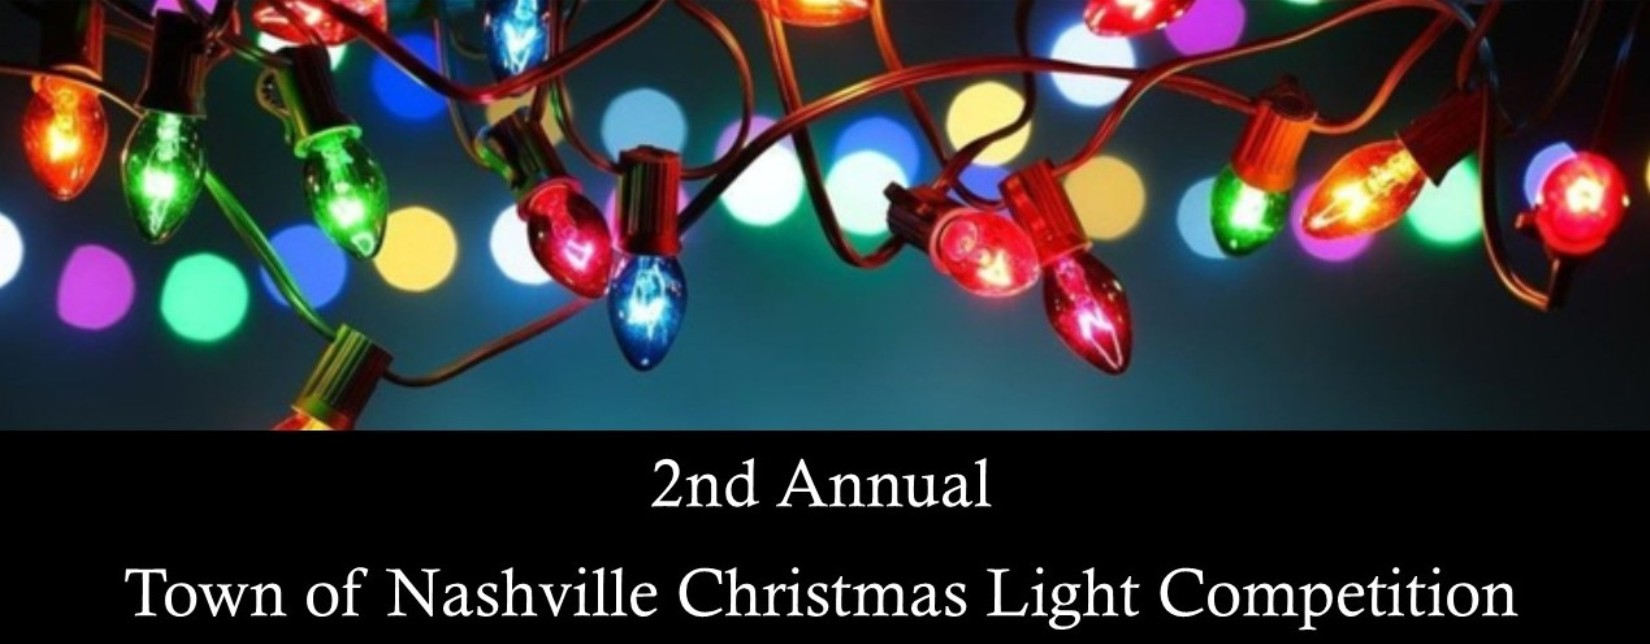 2nd Annual Town of Nashville Christmas Light Competition